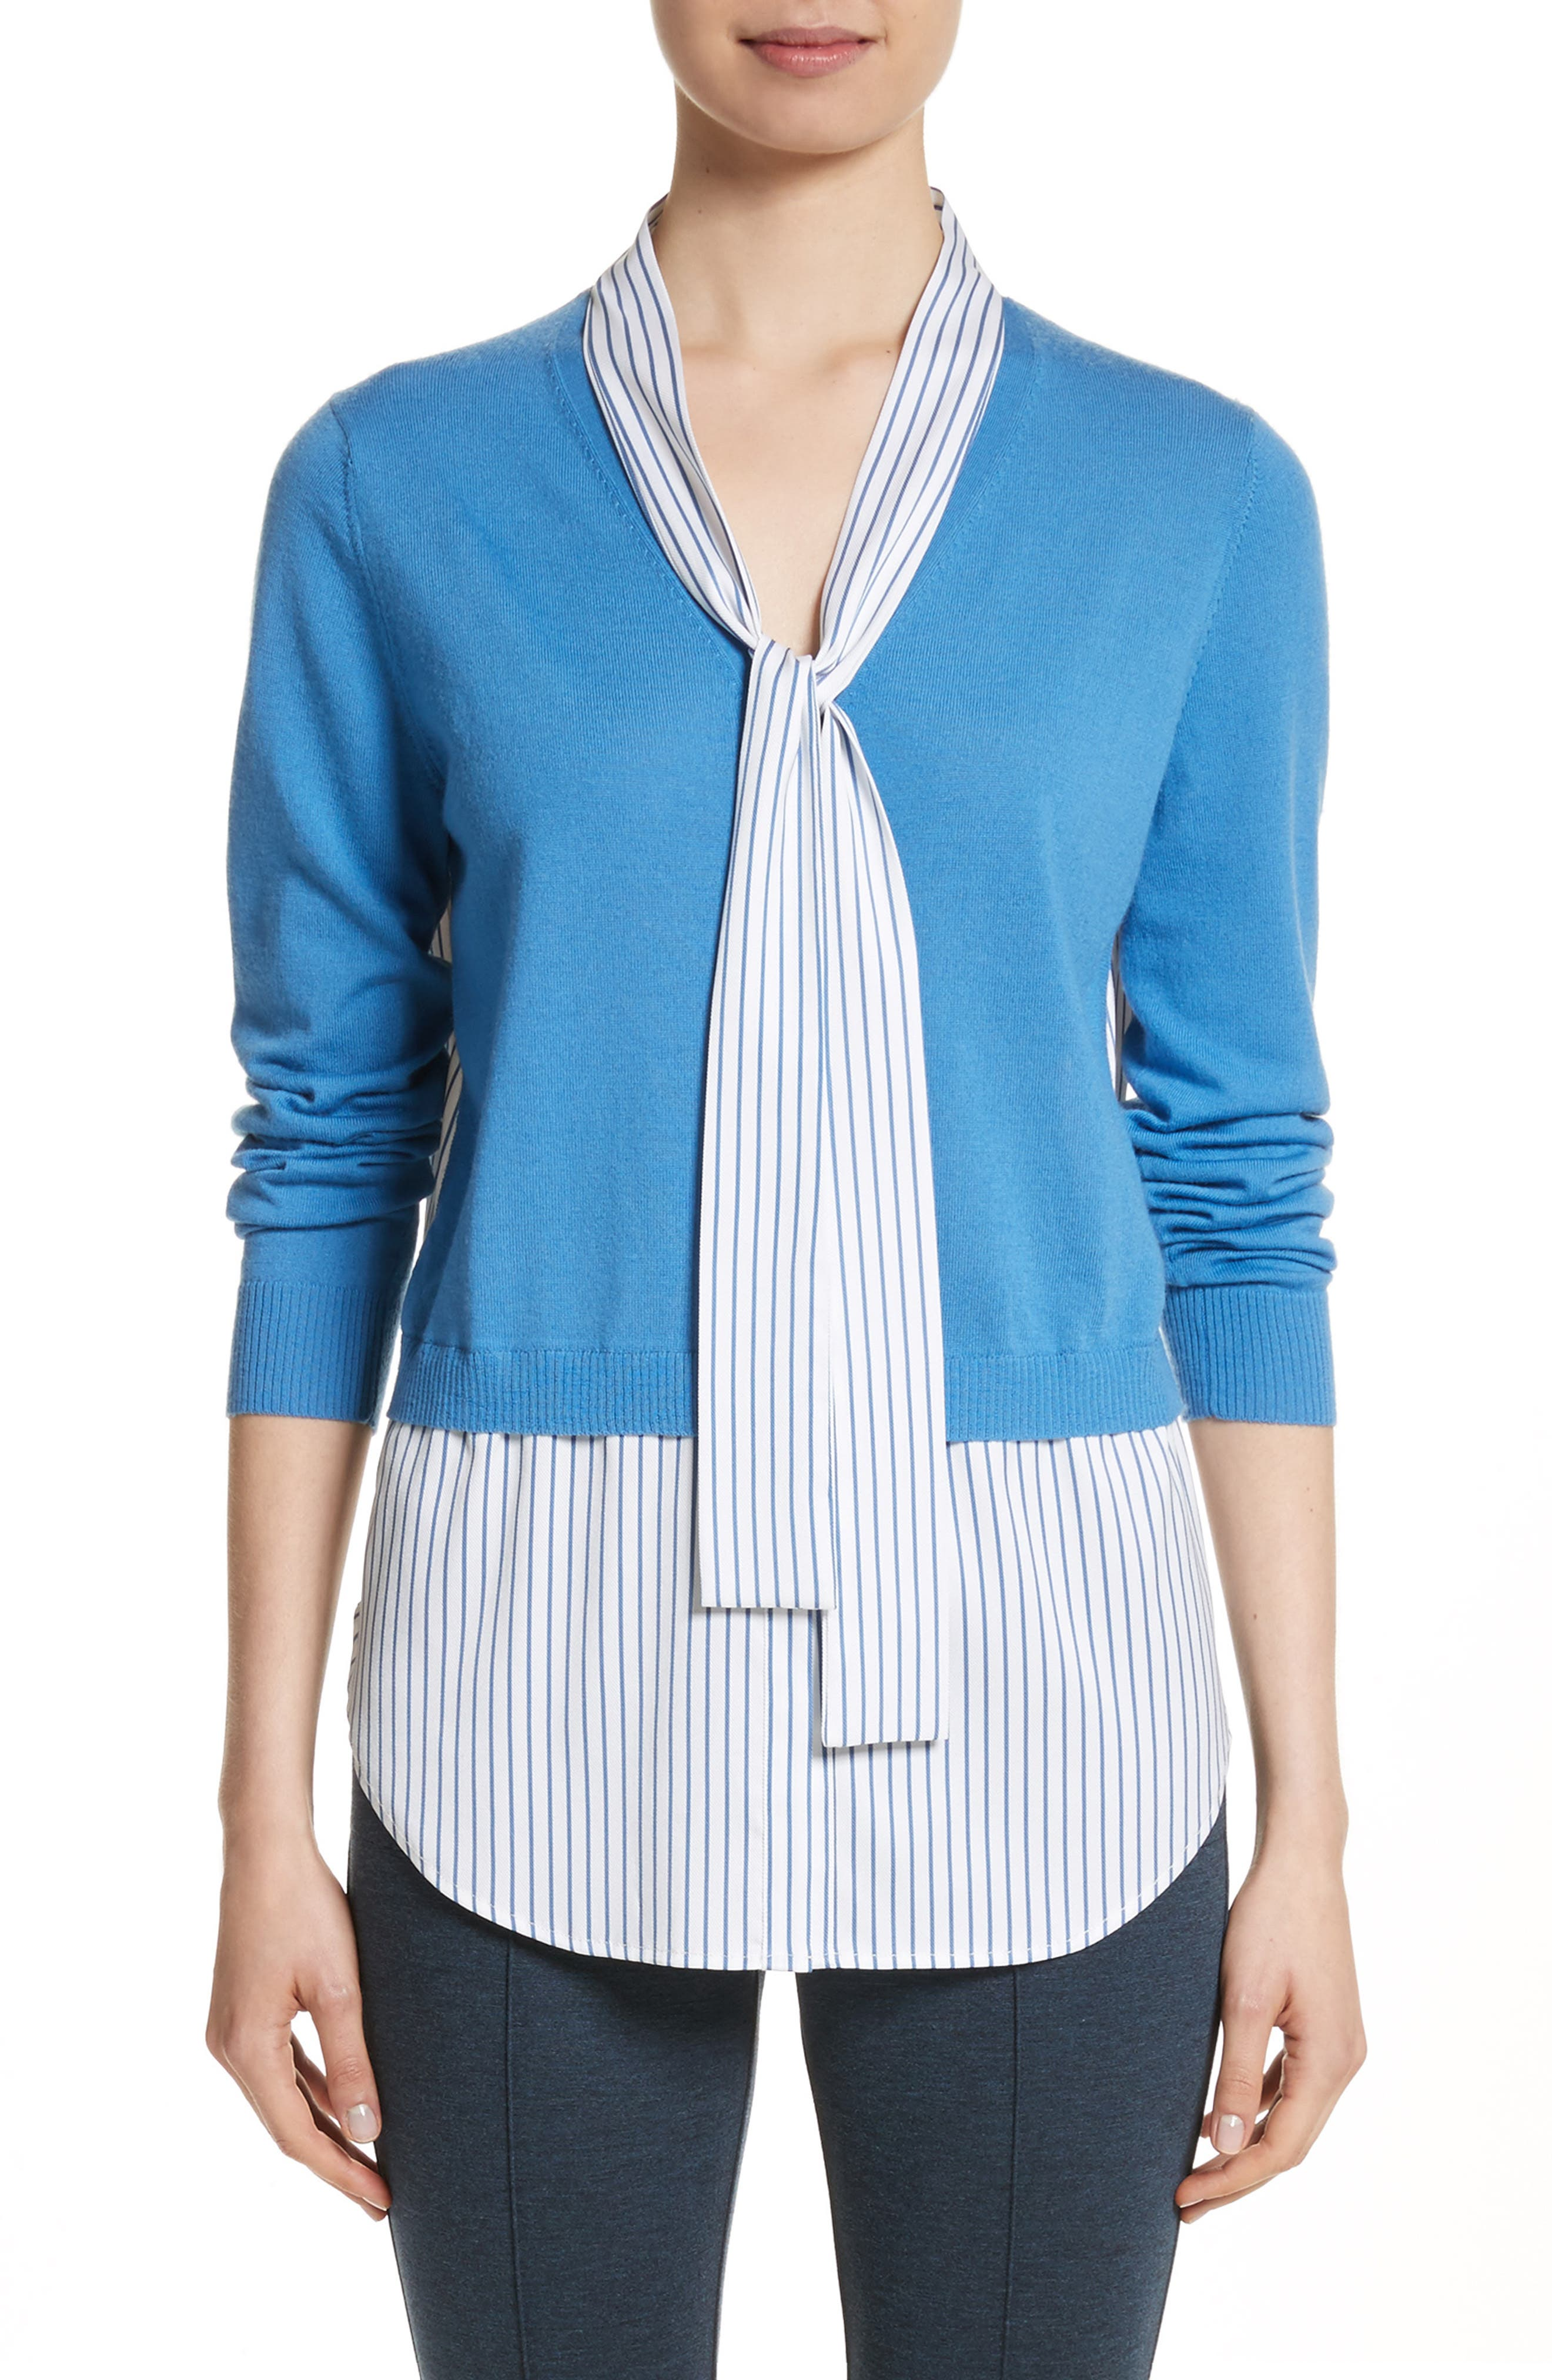 Alternate Image 1 Selected - St. John Collection Layered Jersey Knit Cardigan